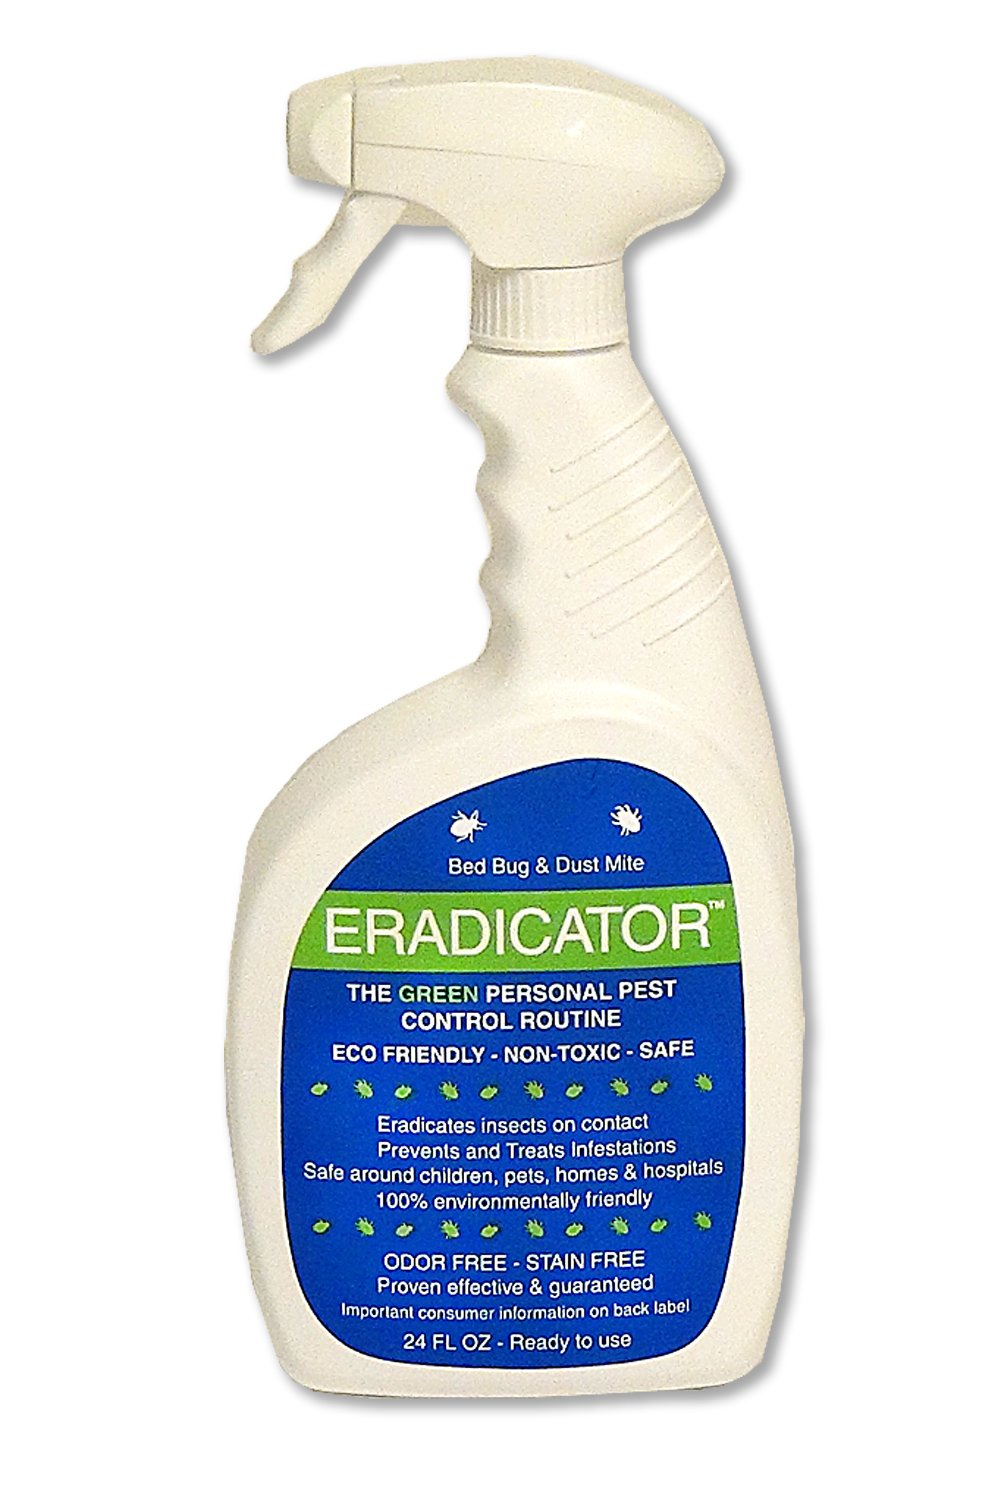 Bed Bug, Dust Mite ERADICATOR 24oz ready to use spray, natural enzymes that safely removes bugs, scientific efficacy test proven